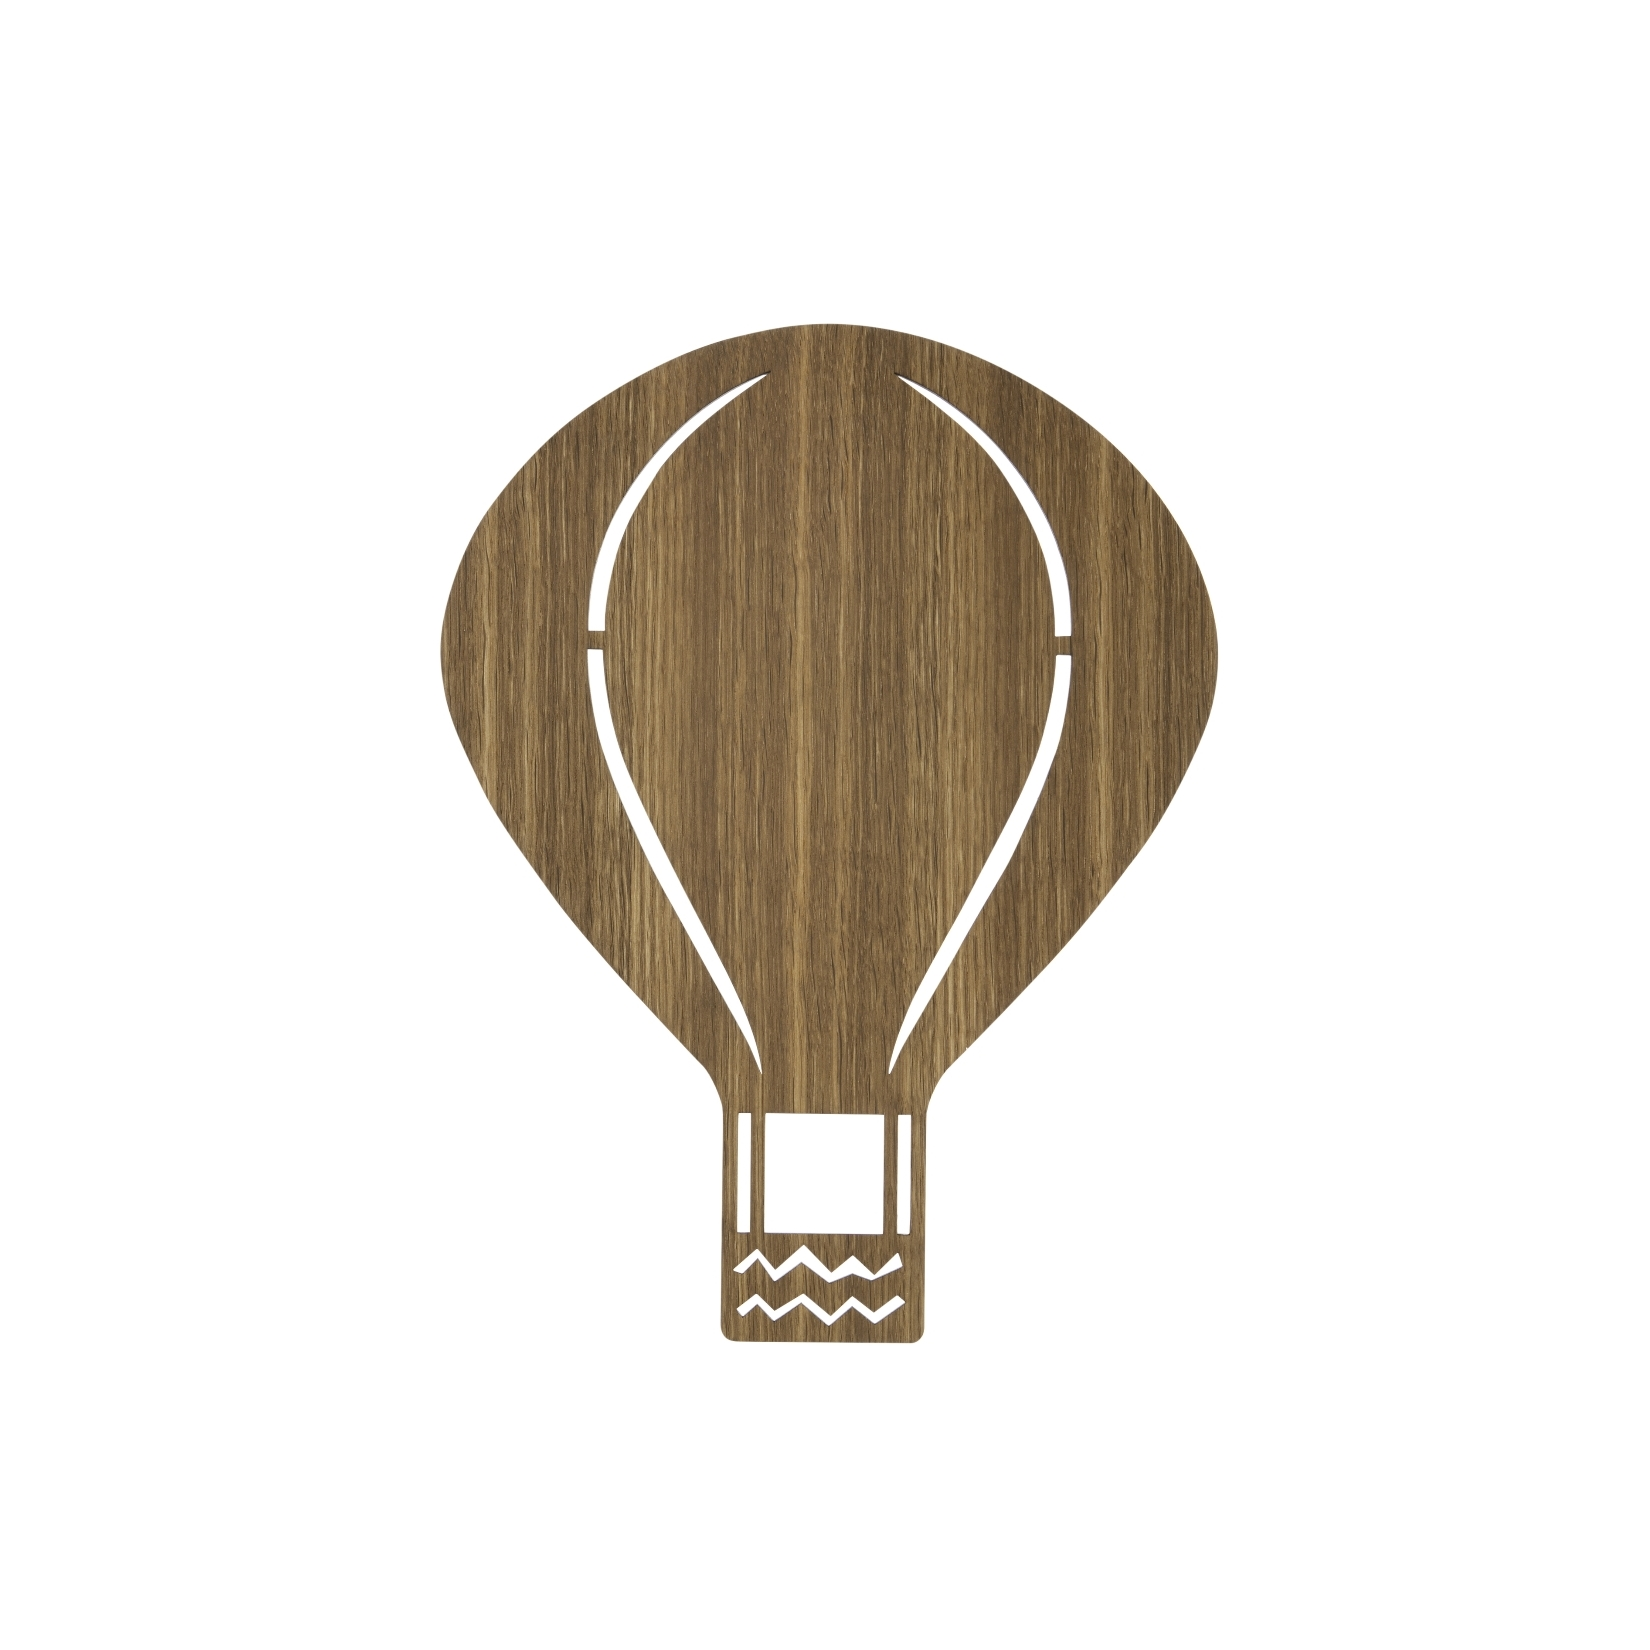 Barnlampa Air Balloon smoked oak, Ferm Living